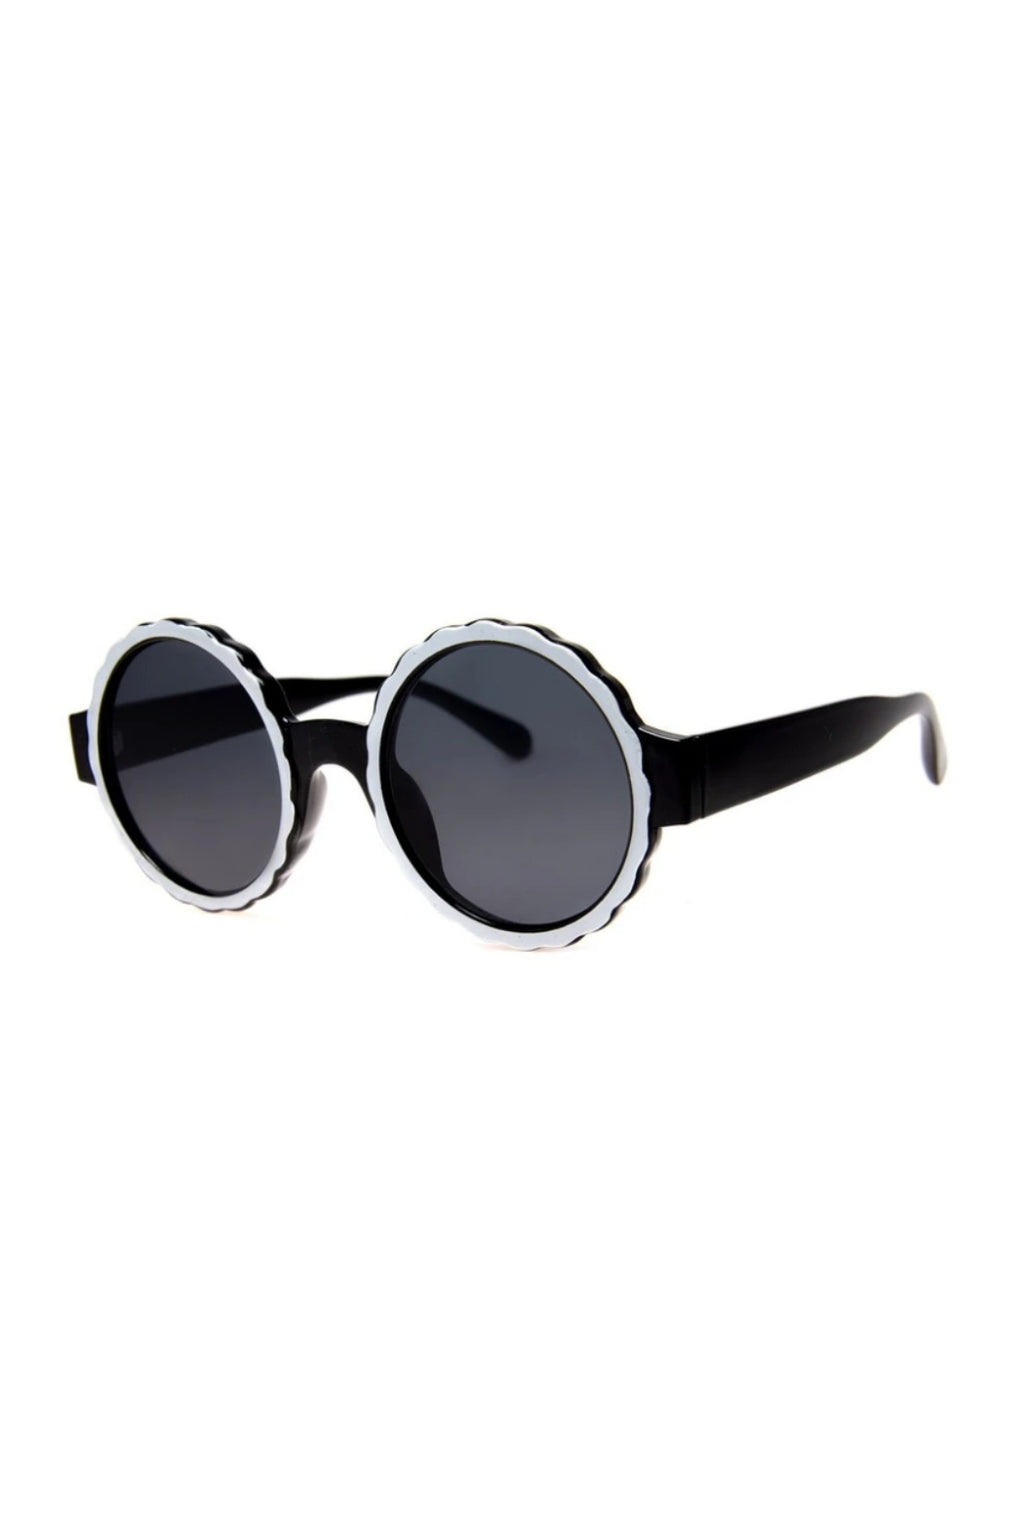 Omelette Sunnies - Black/White